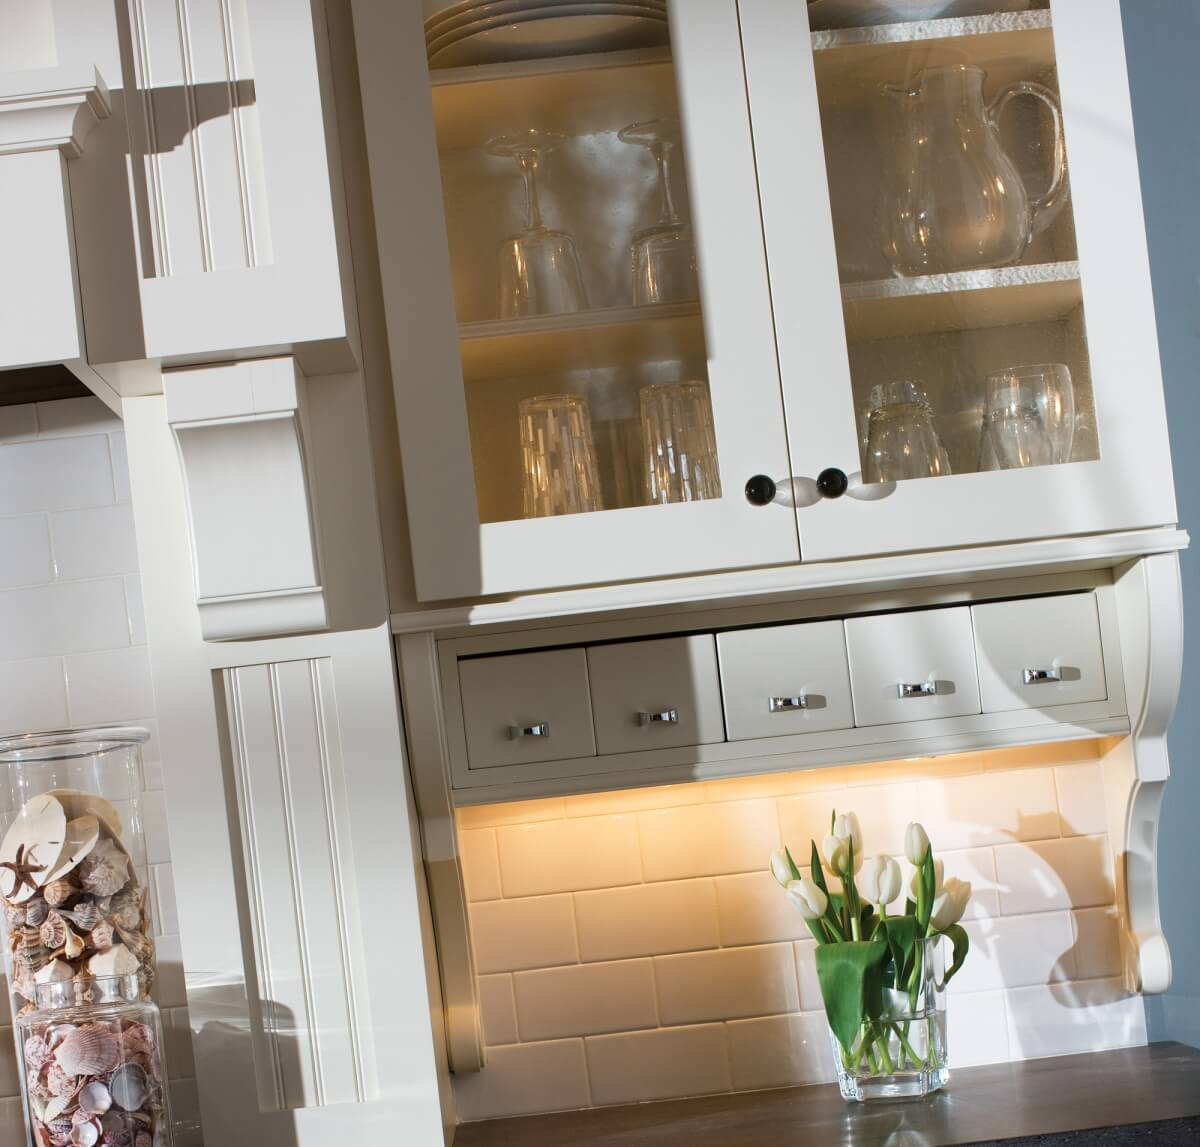 Glass cabinet doors in a cottage style kitchen design with Dura Supreme Cabinetry.